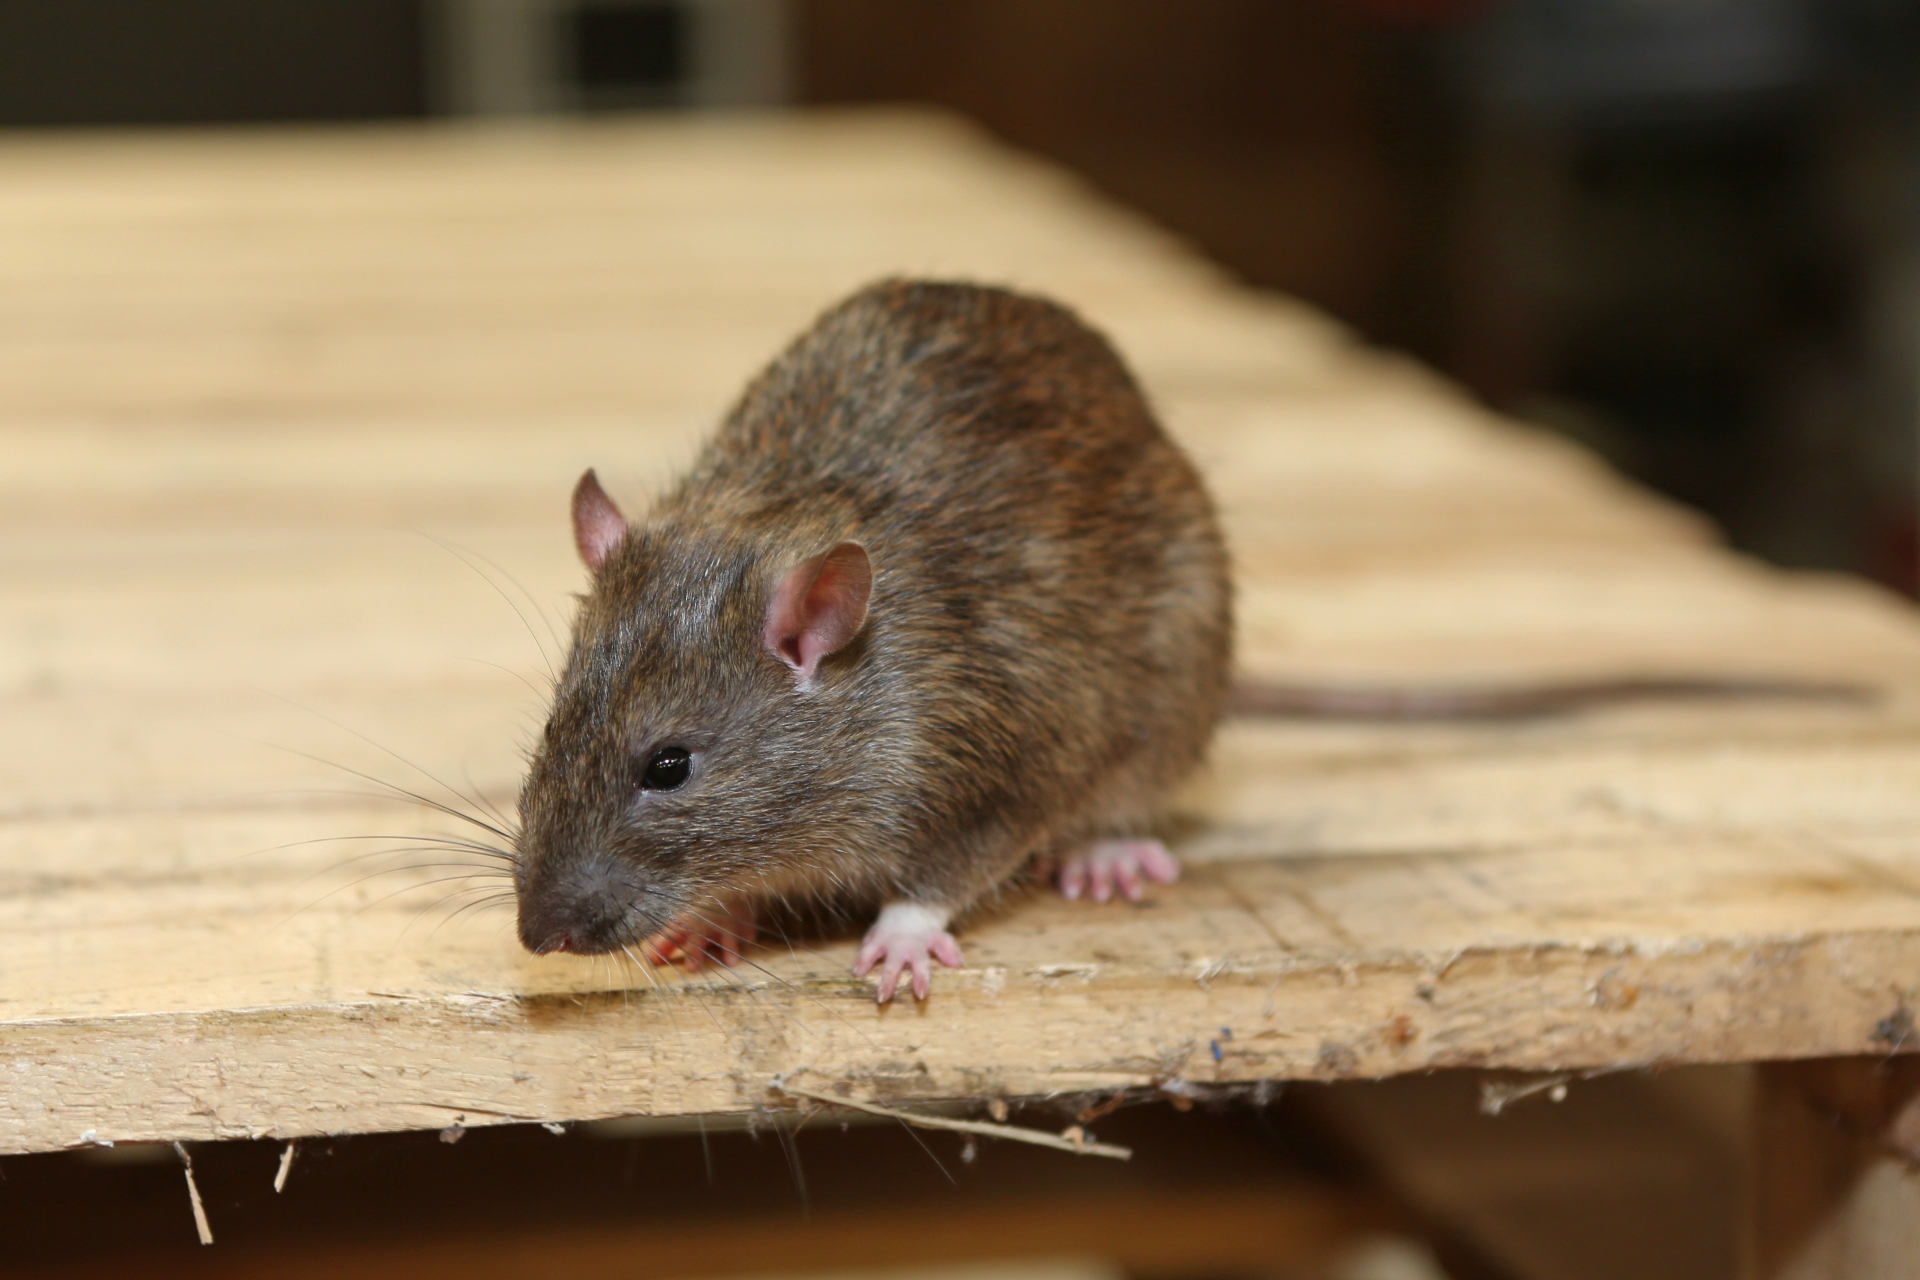 Rat Infestation, Pest Control in East Sheen, SW14. Call Now 020 8166 9746